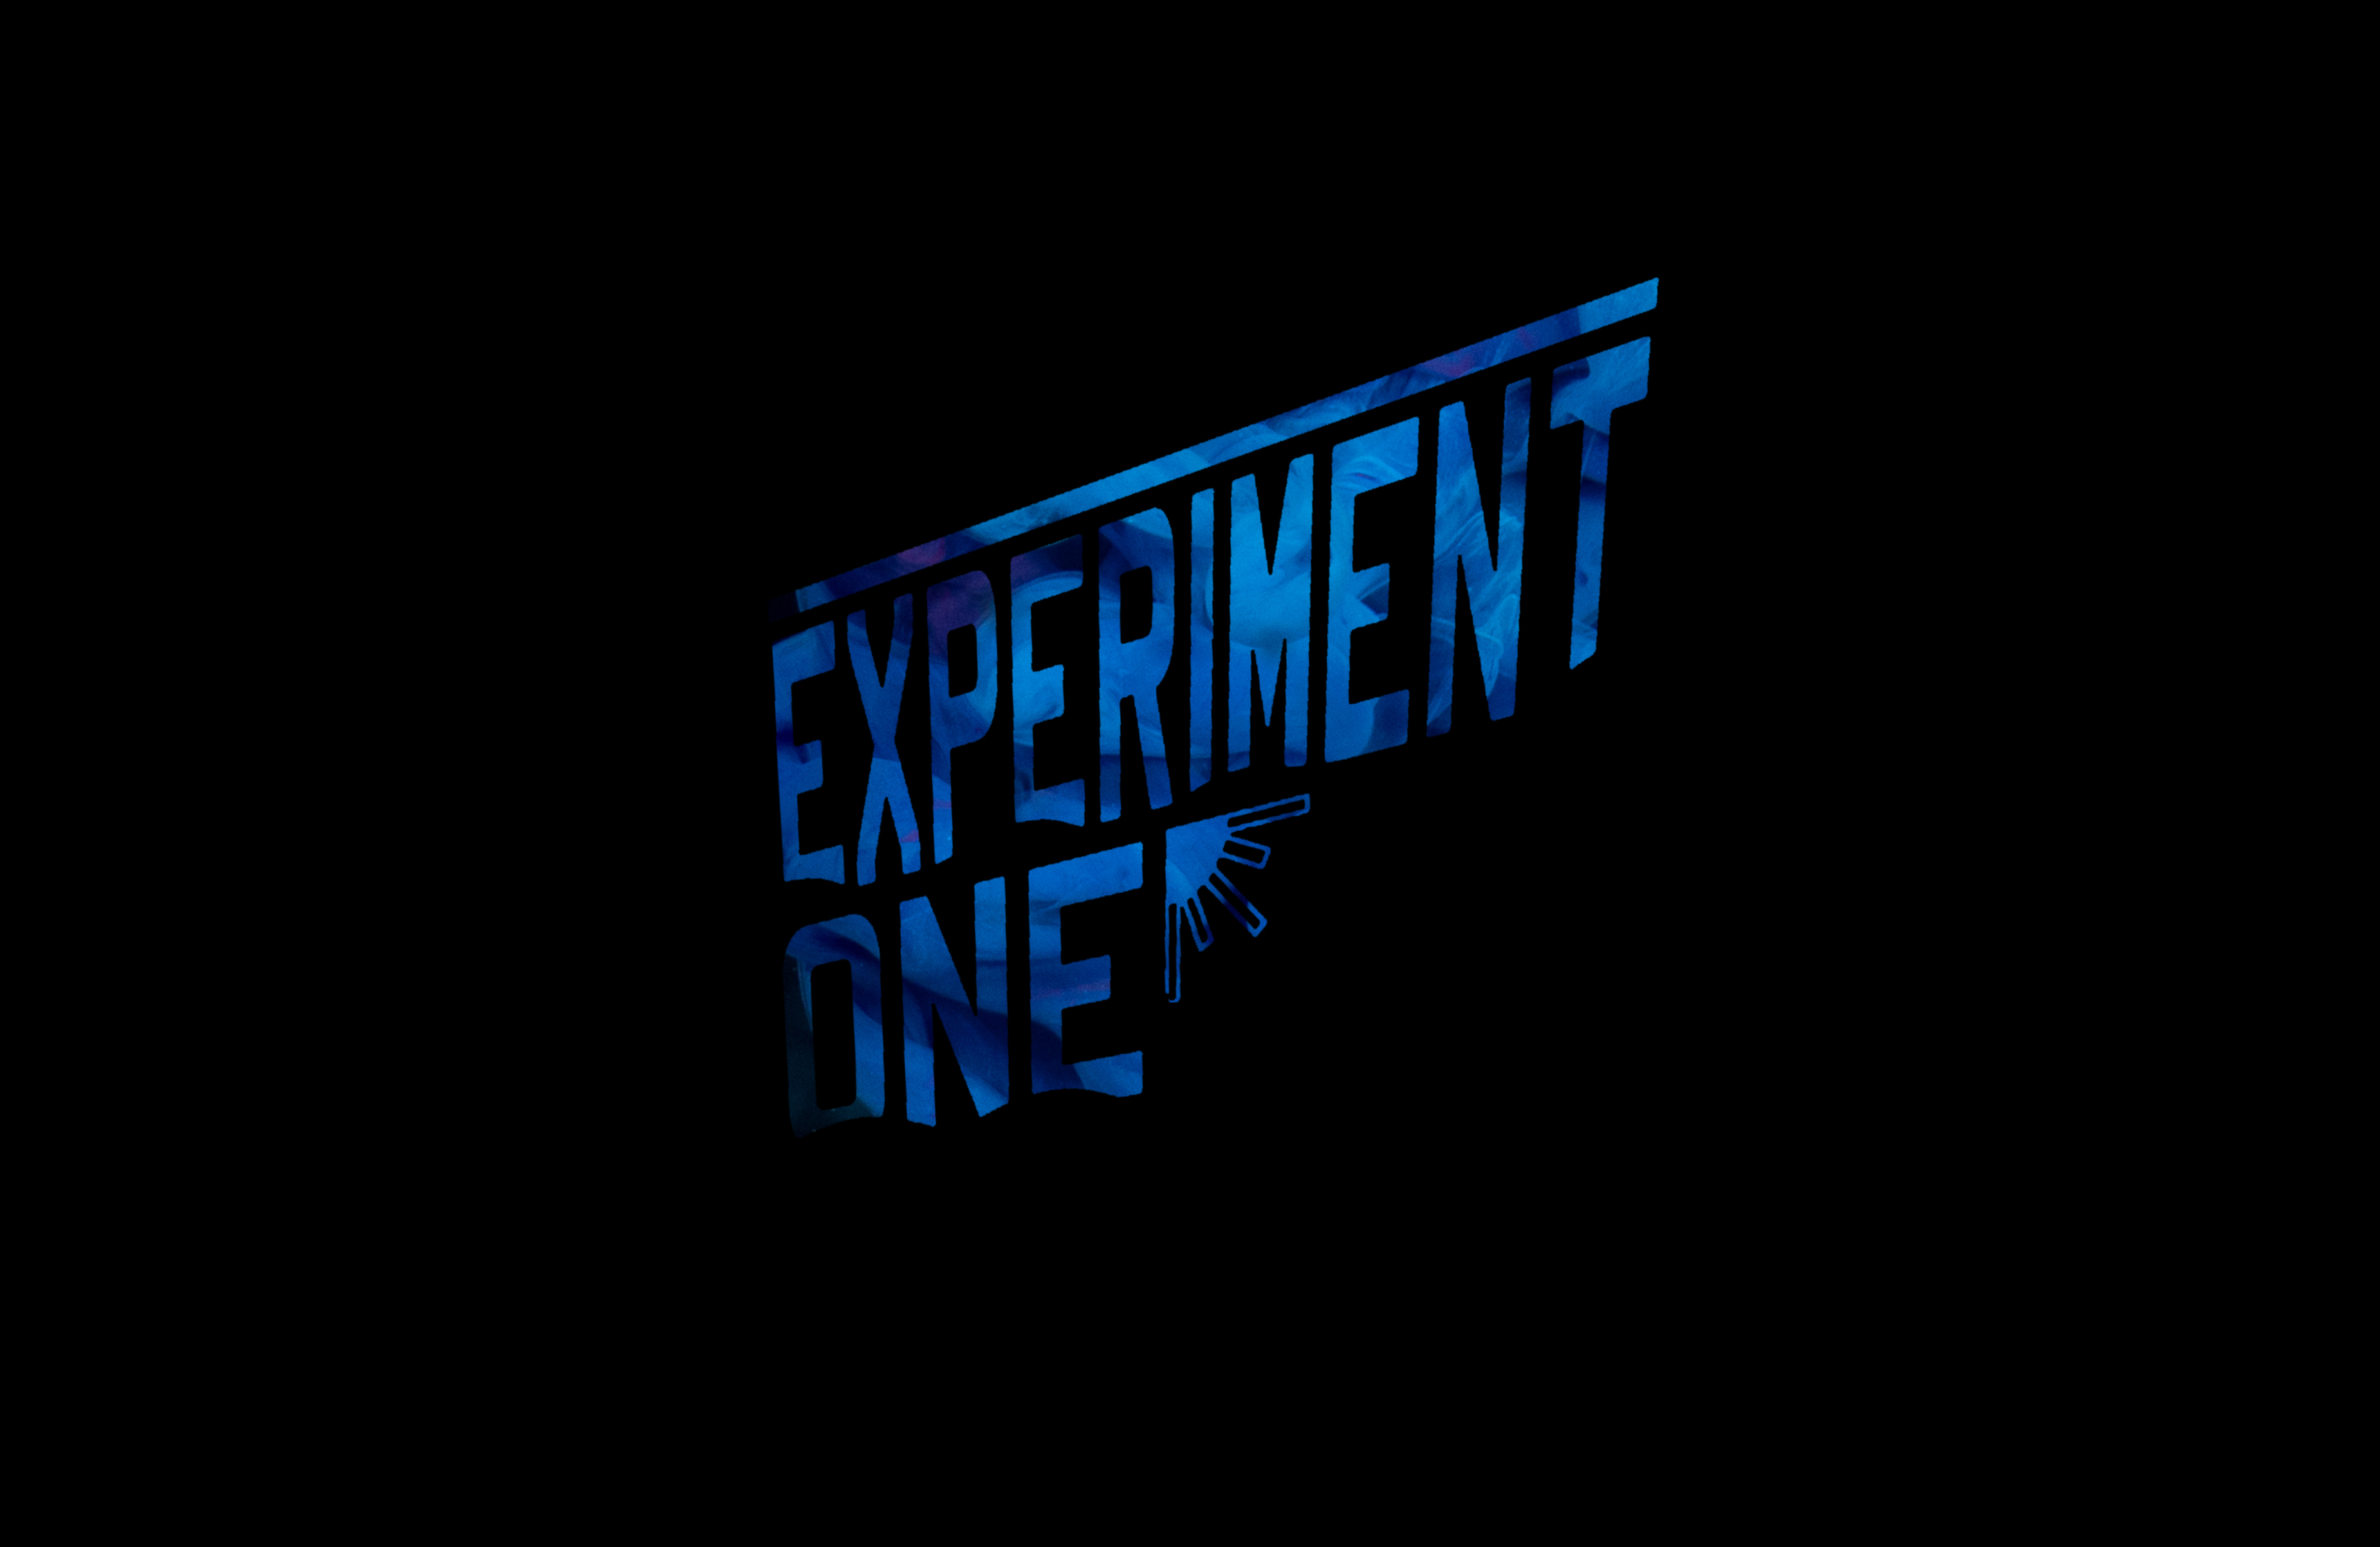 Experiment One